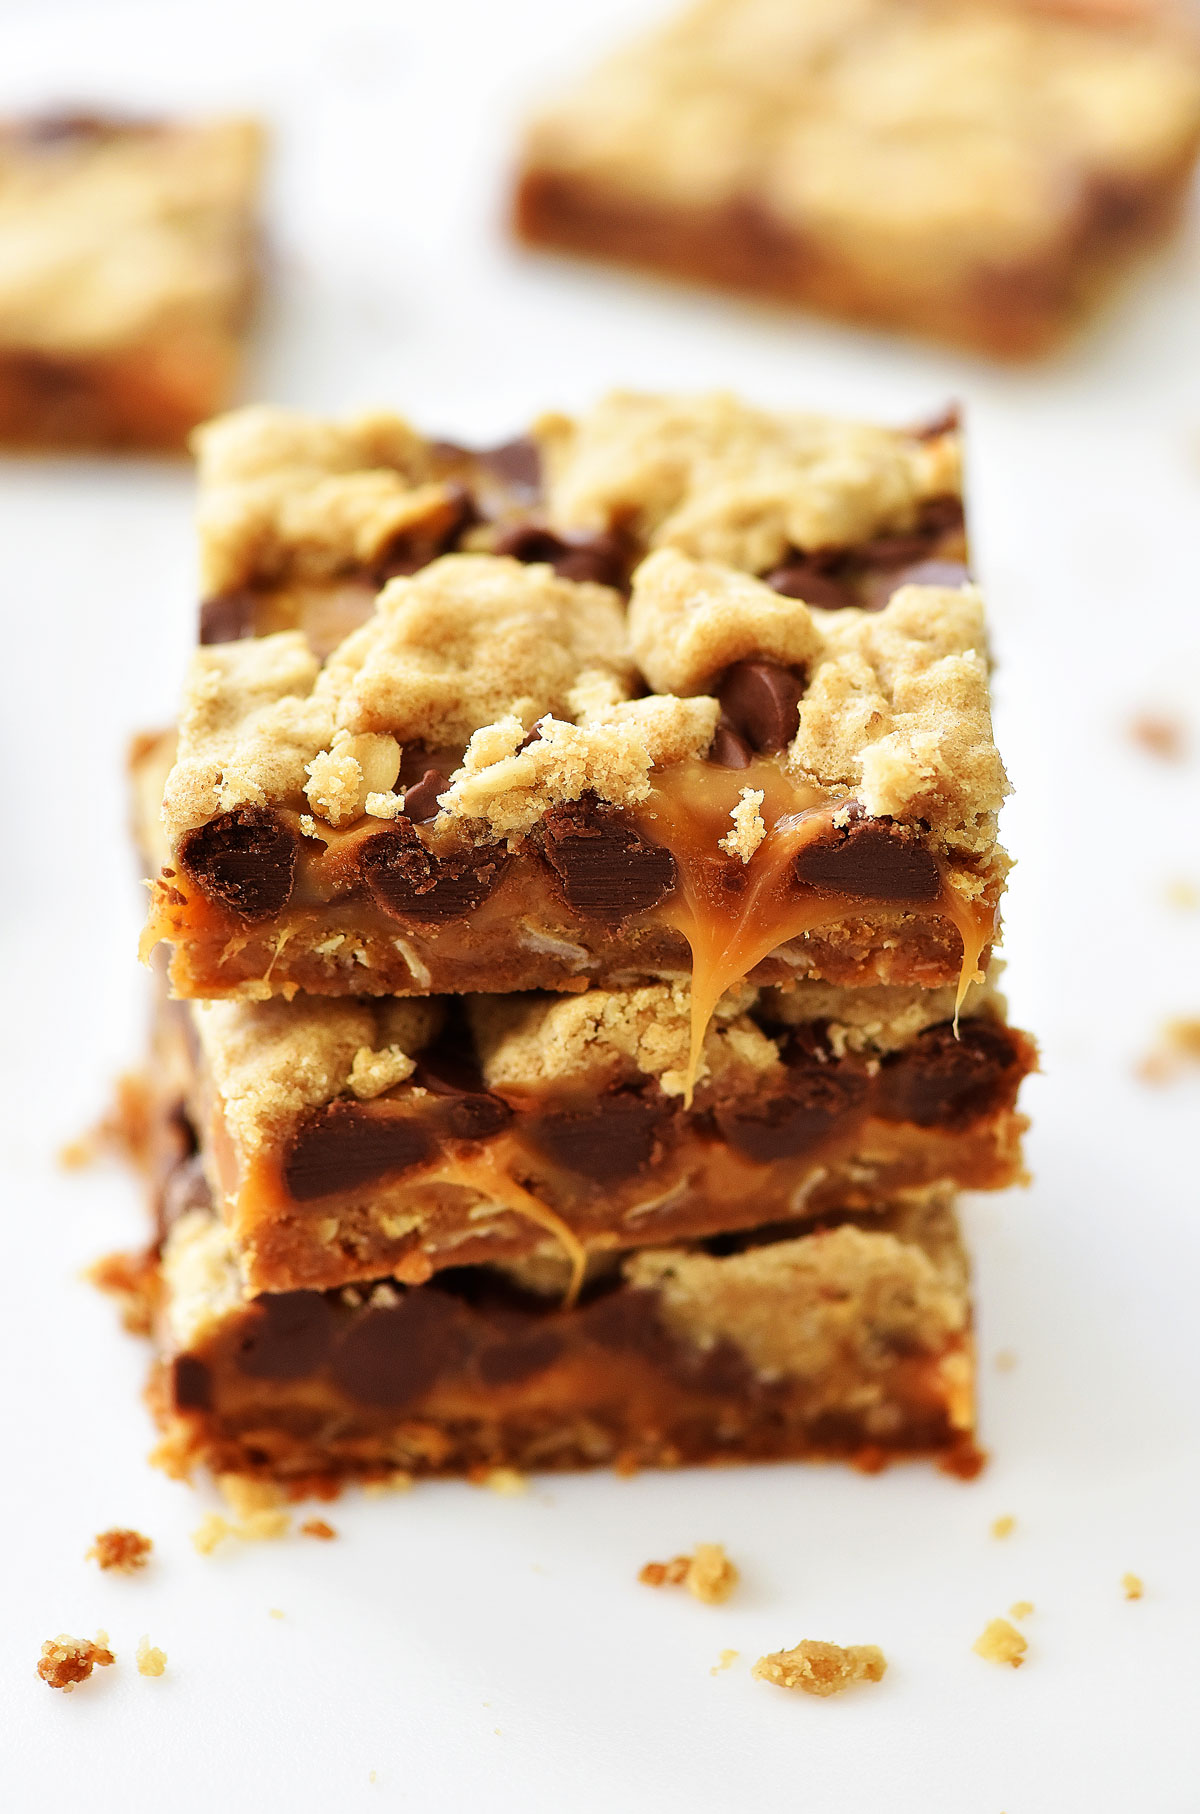 These Binge Bars have an oatmeal cookie crust with chocolate and caramel layers. Life-in-the-Lofthouse.com